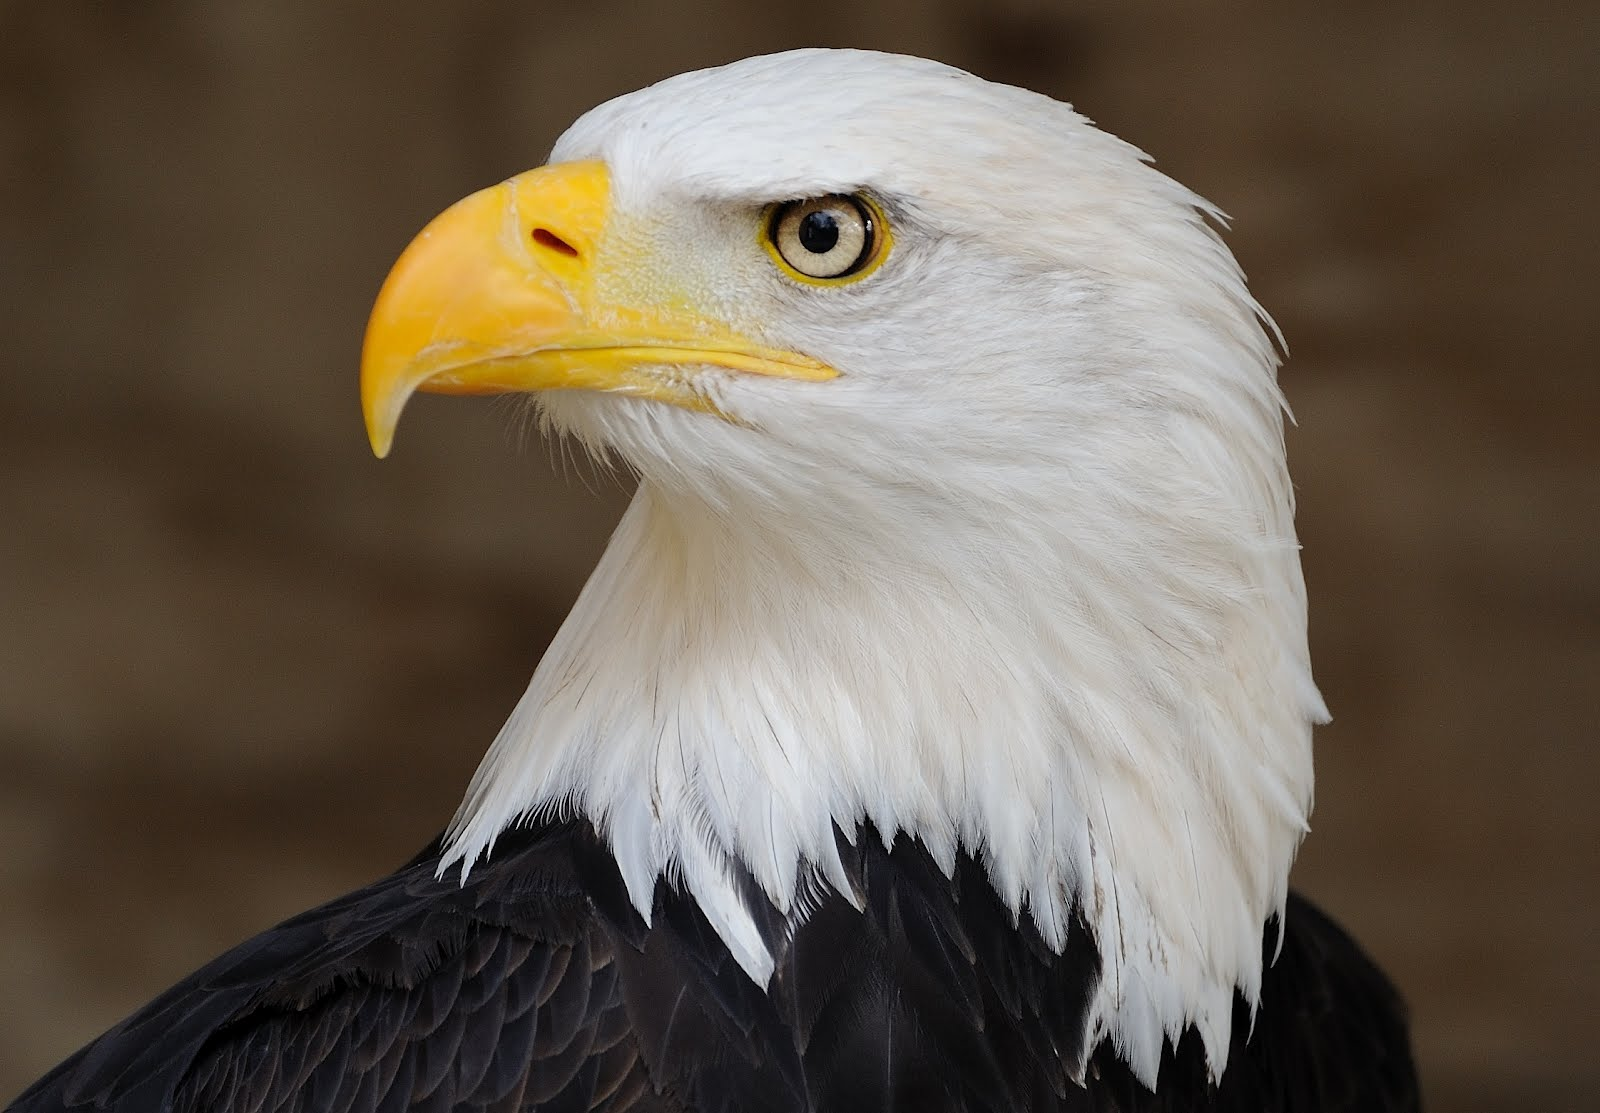 eScienceCommons: Democracy works for Endangered Species Act